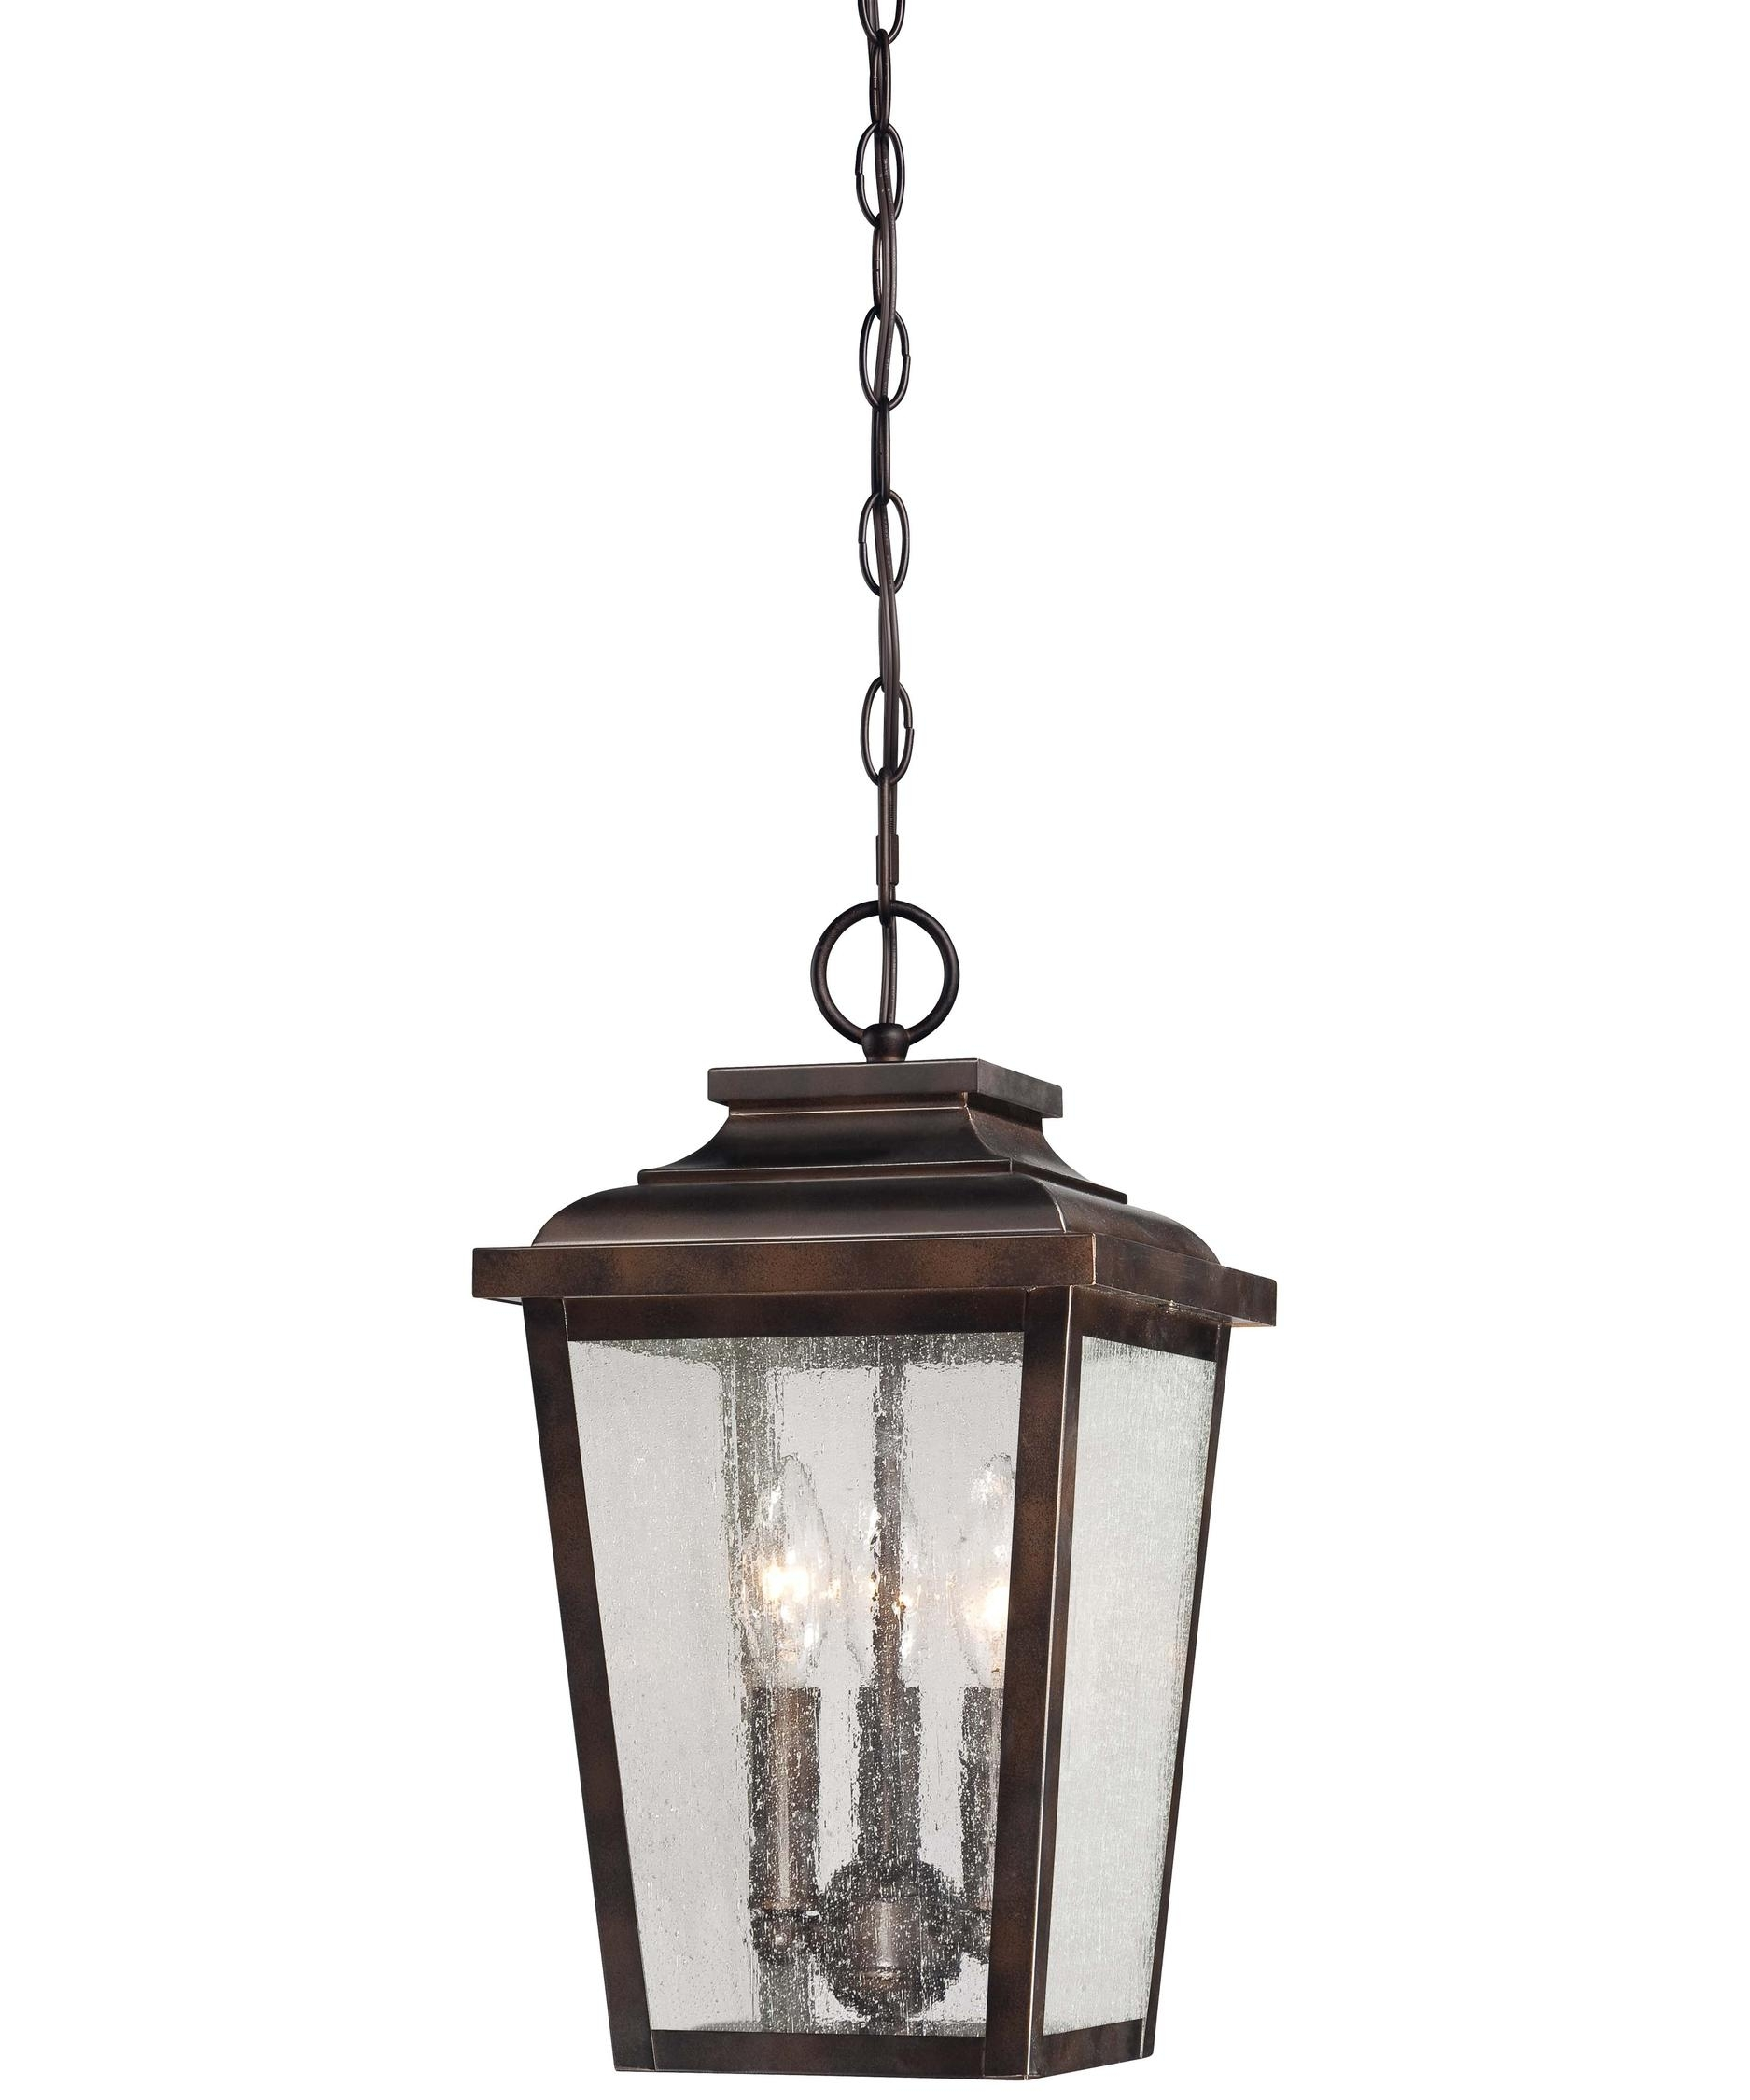 Pendant Lighting Ideas Top Outdoor Hanging Lights Over Also Metal Within Outdoor Iron Hanging Lights (#7 of 10)